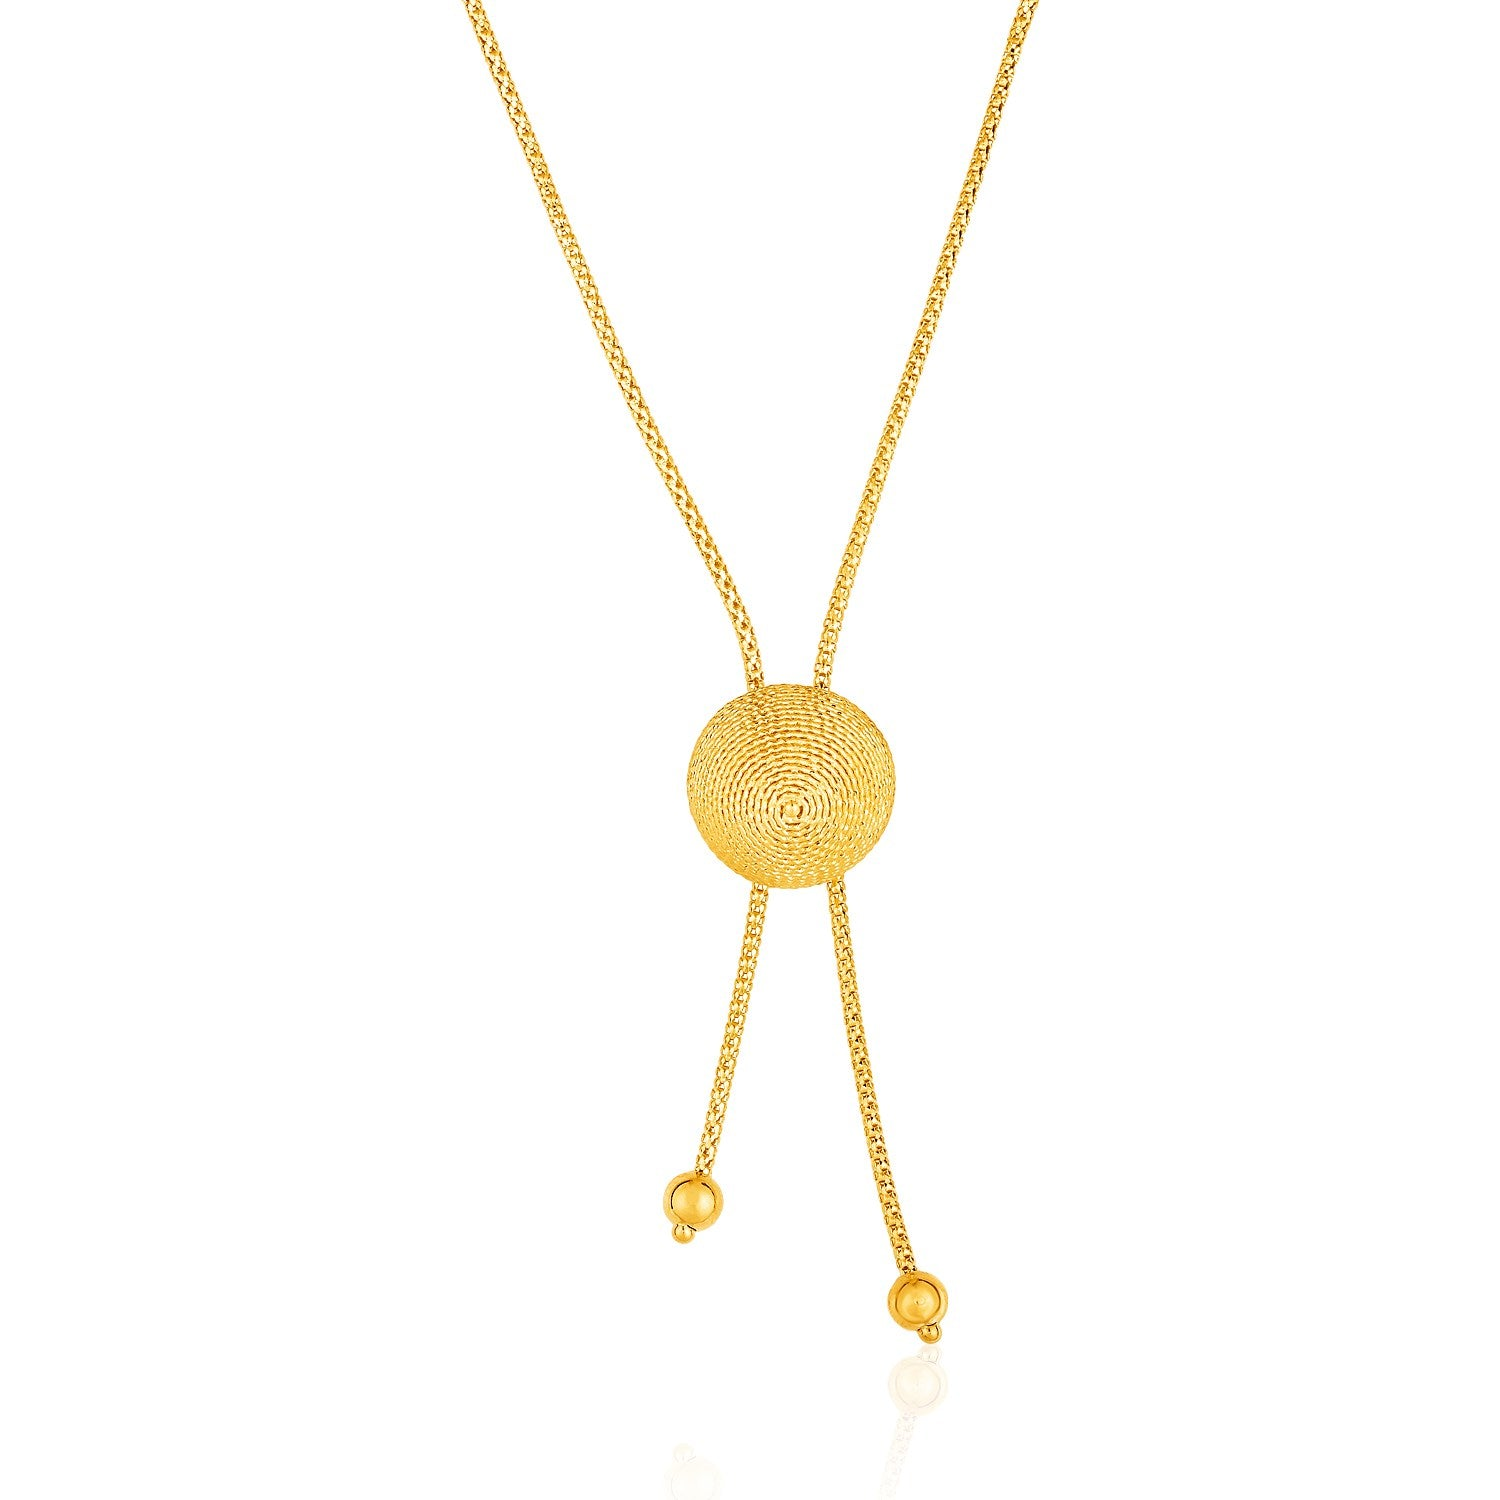 14K Yellow Gold Adjustable Lariat Necklace with Textured Round Dome